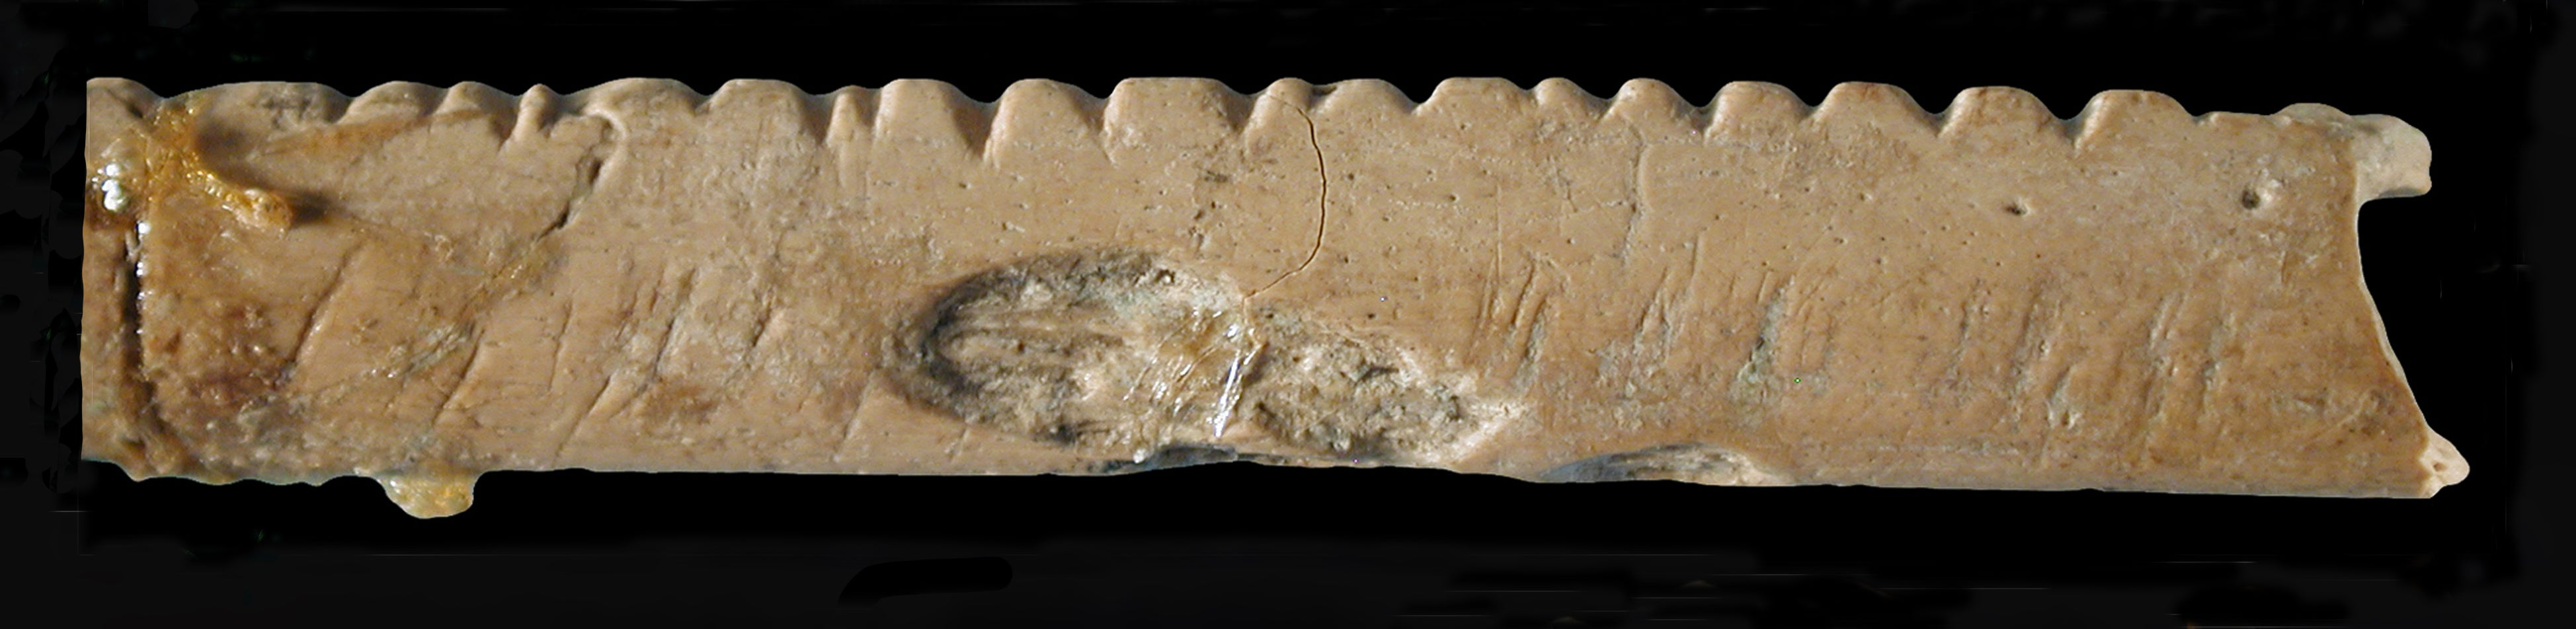 Notches cut into this baboon bone some 40,000 years ago.